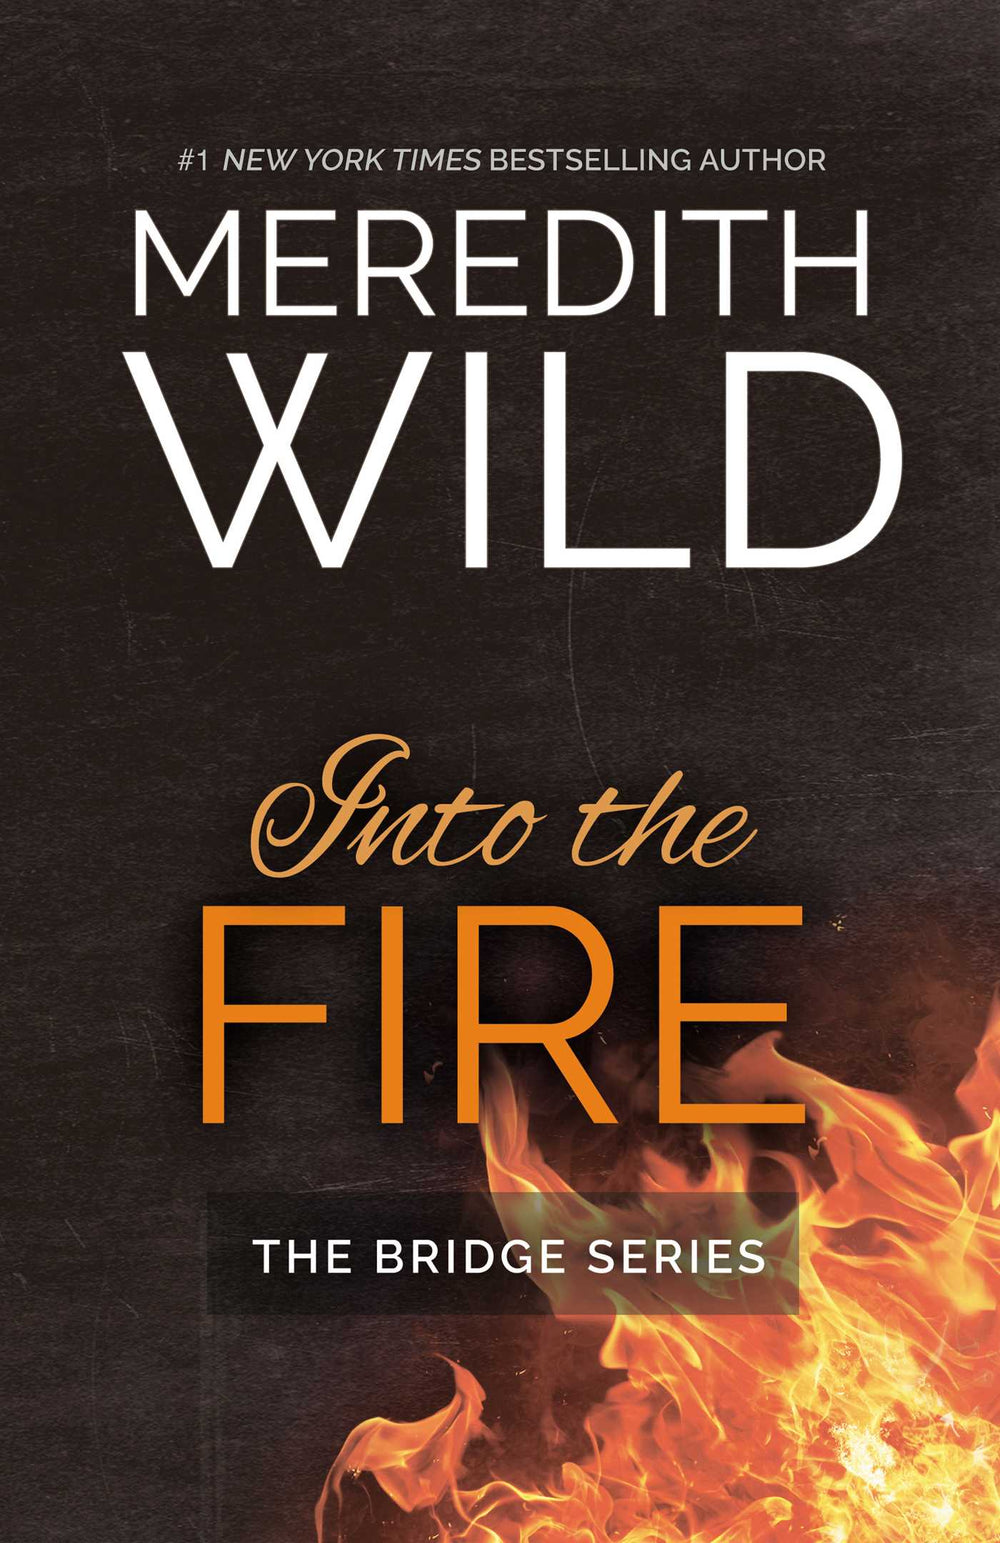 Into the Fire (Bridge #2) by Meredith Wild